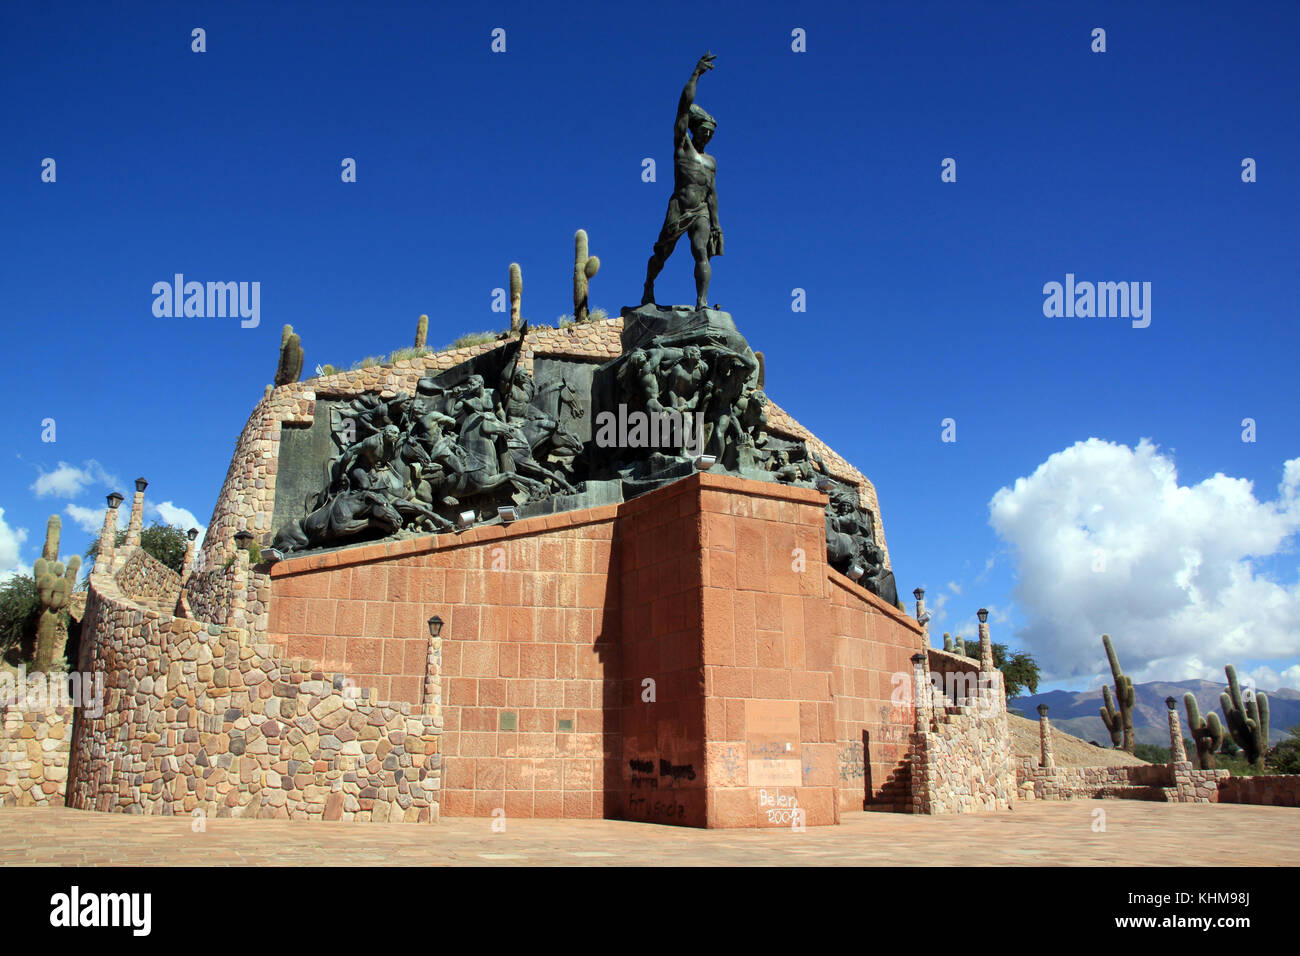 Monument of libertador on the hill in Humahuaca, north Argentina - Stock Image